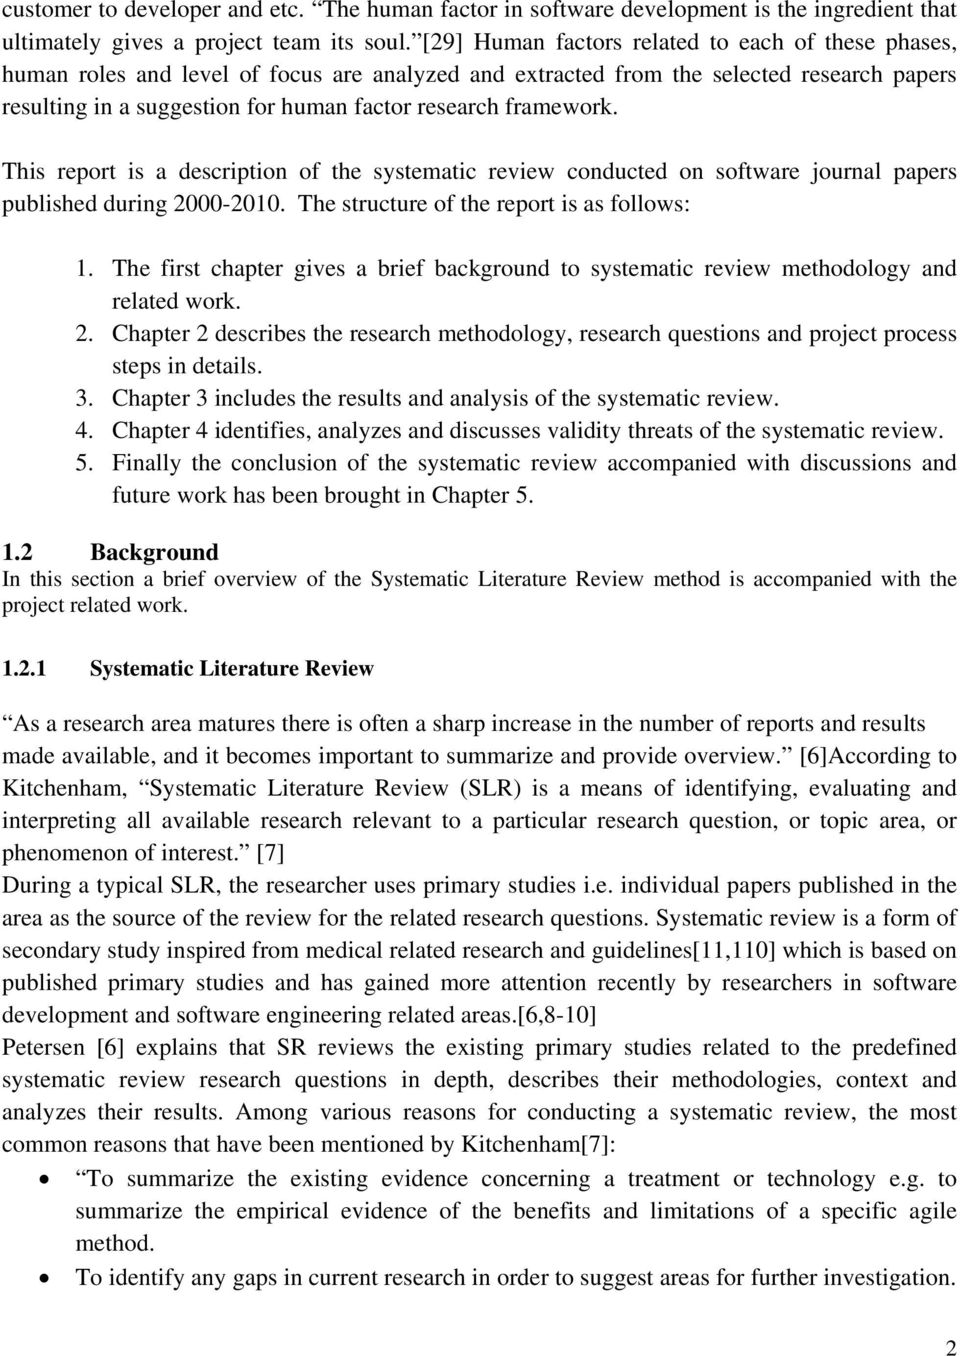 Sample Discussion Essay  Essay On Violence In Schools also Essay Correction Legalize Gay Marriage Essays Essay About Writing